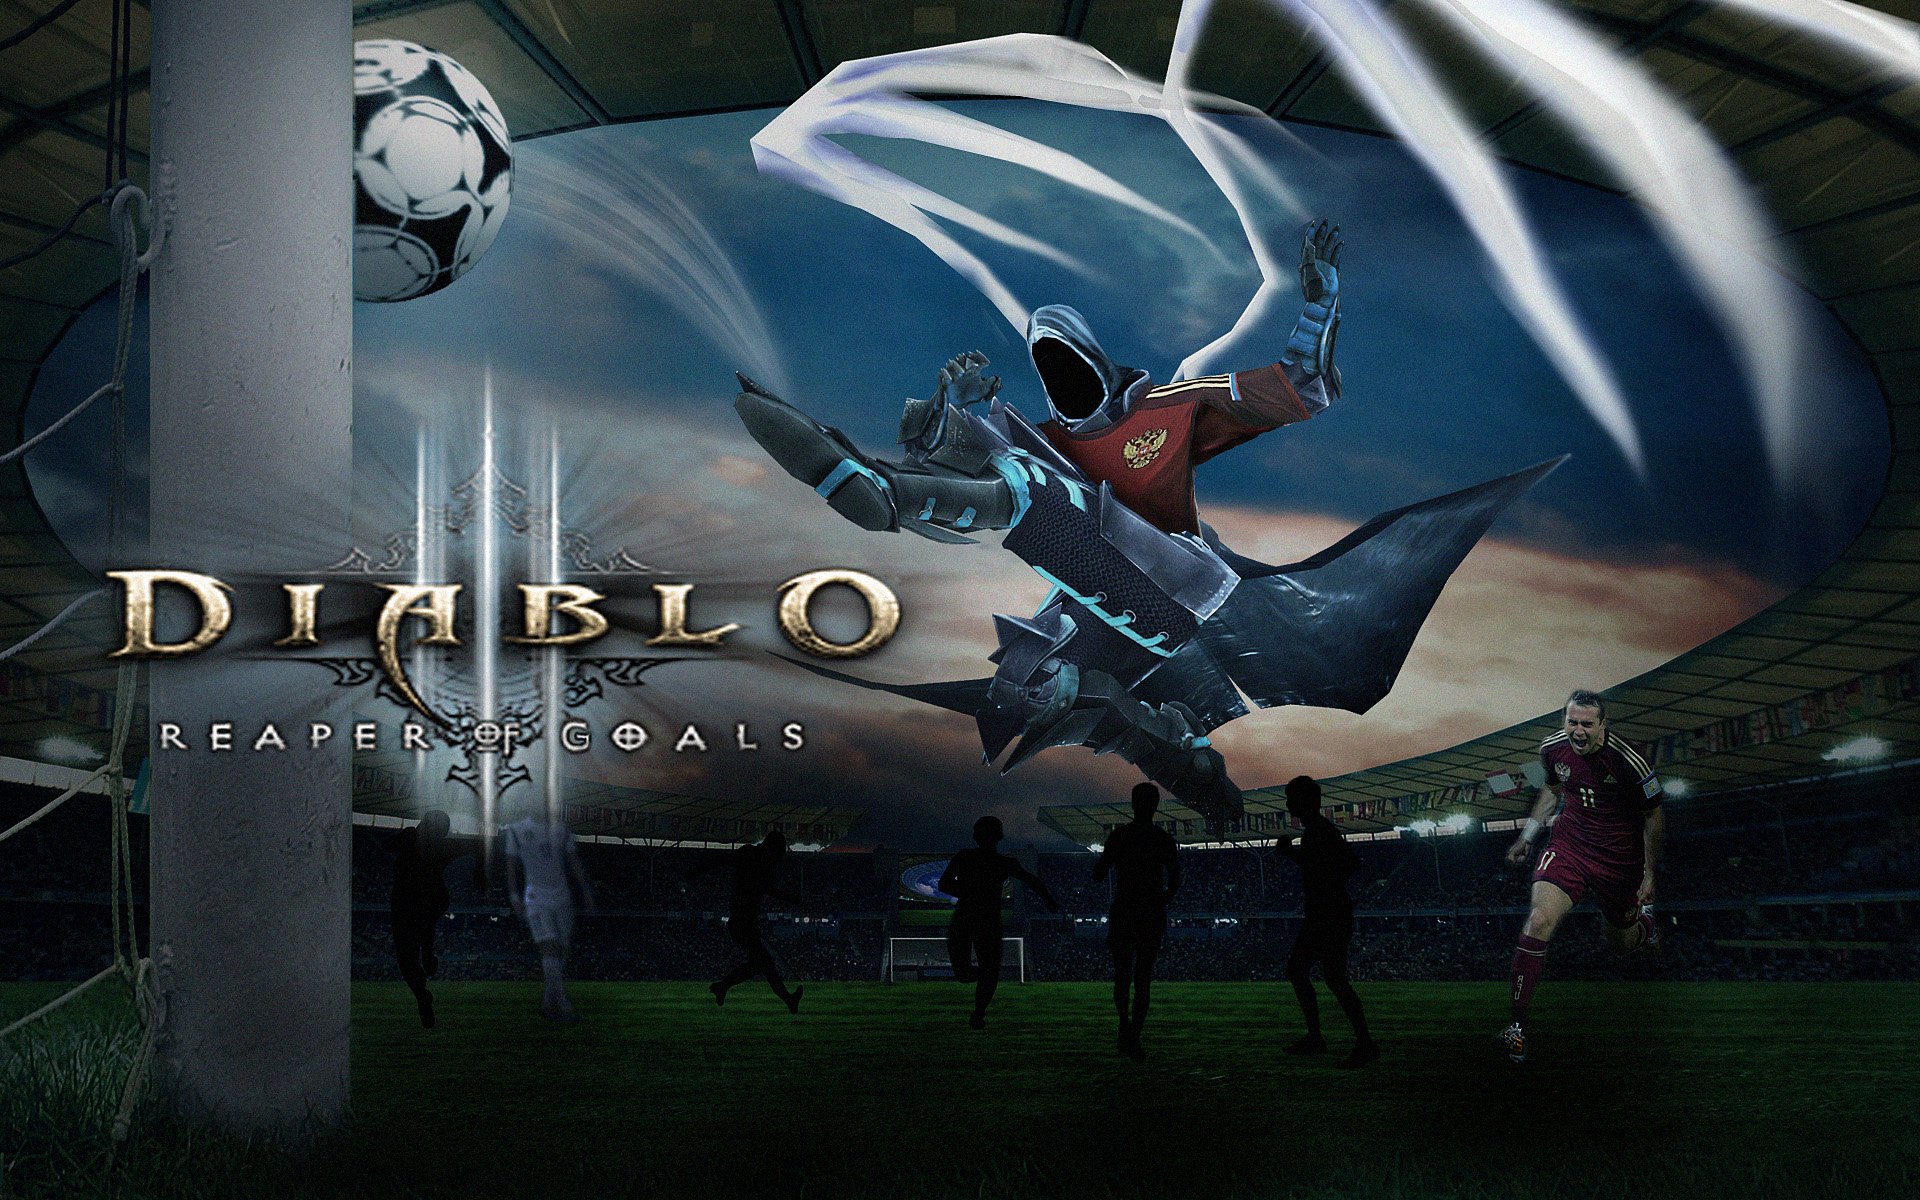 Diablo 3 - Reaper of Goals - Malthael's World Cup by SovietMentality